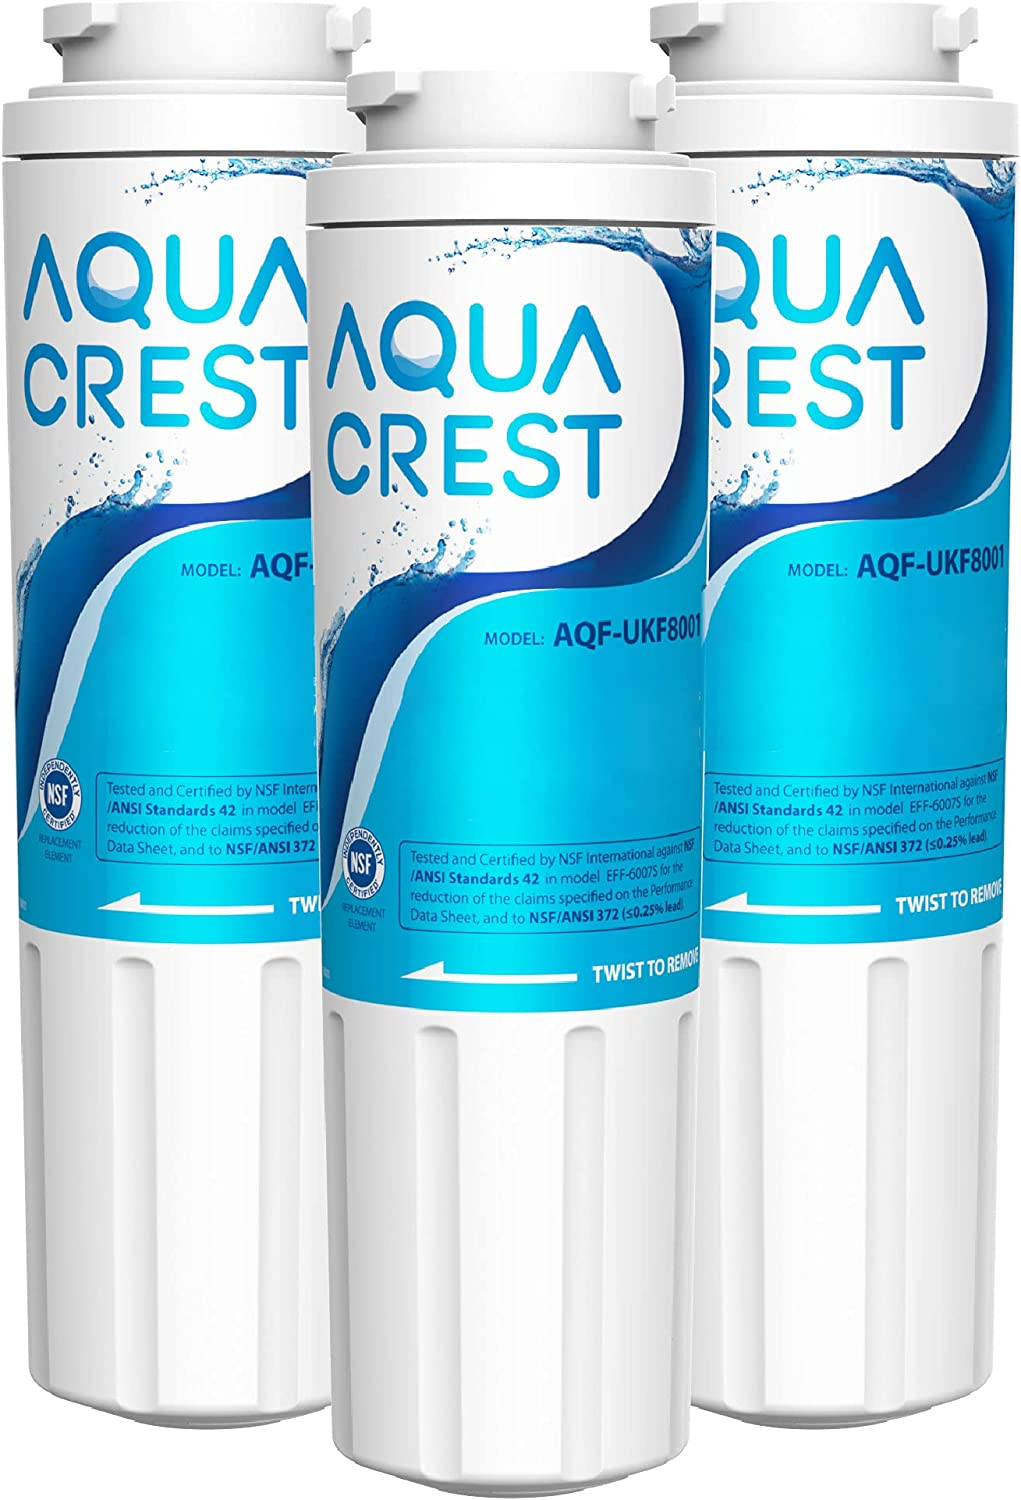 Max 78% OFF AQUA CREST UKF8001 Replacement for Now on sale EveryDrop 4 Filter Whirlpool